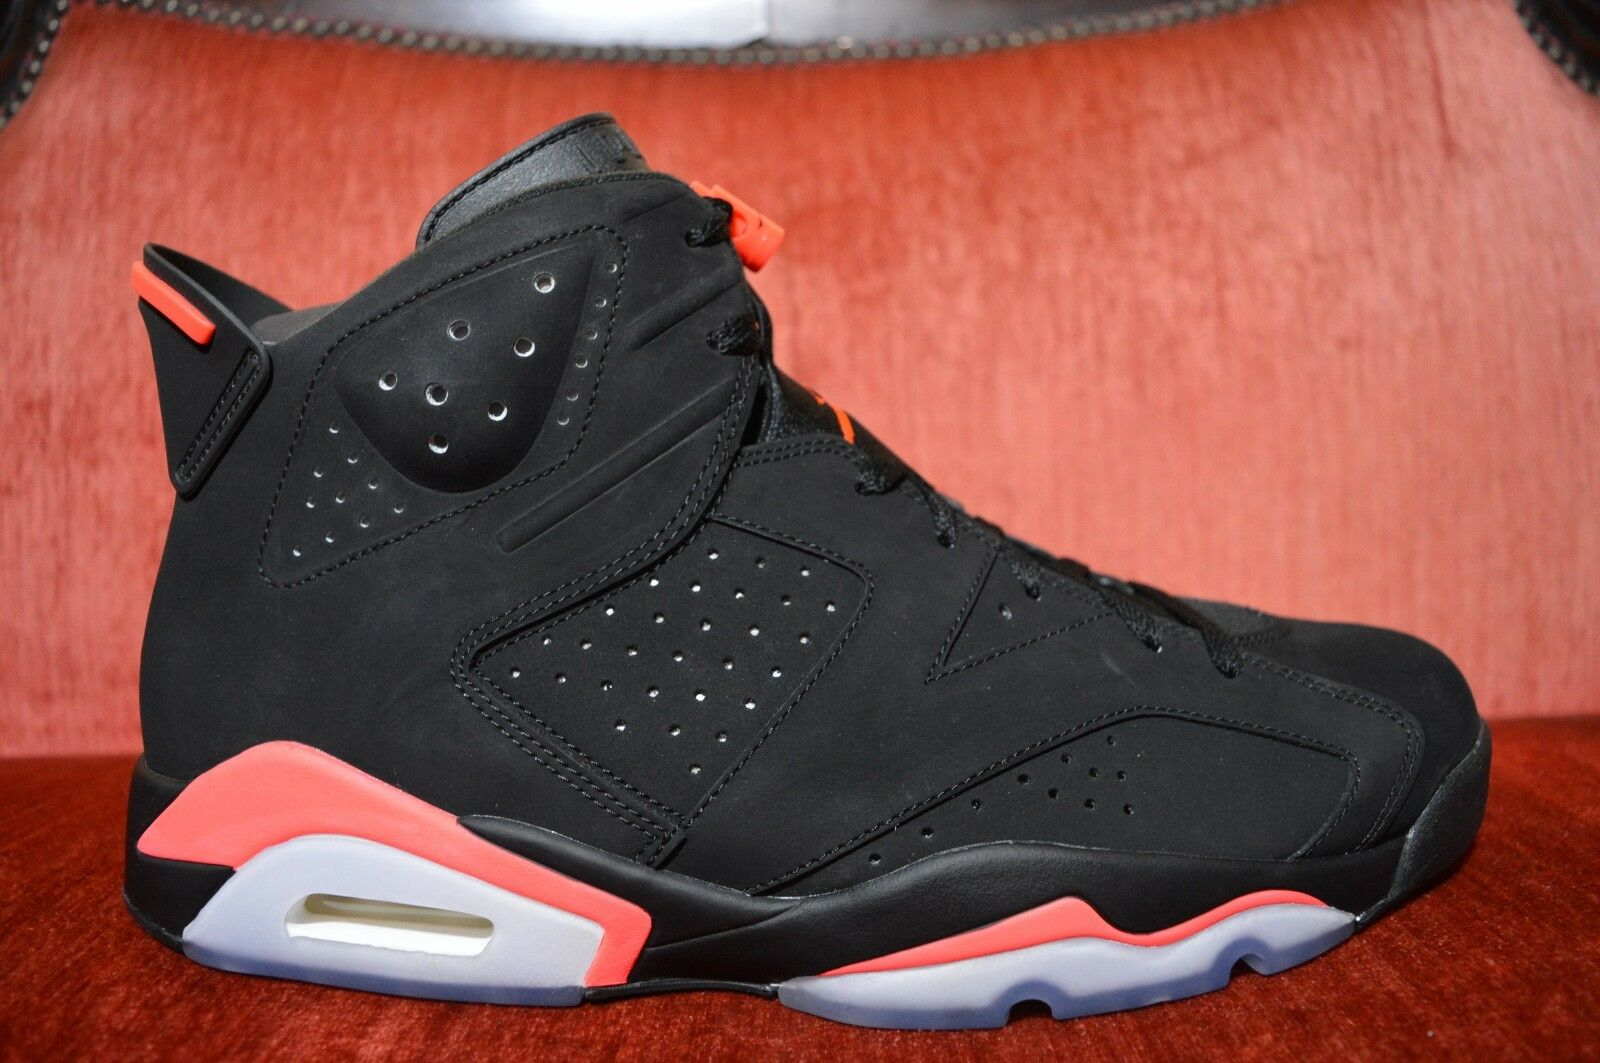 half off 07639 ddc17 New Nike Air Jordan 6 6 6 VI Black Infrared 23 Men s Size 13 384664 023